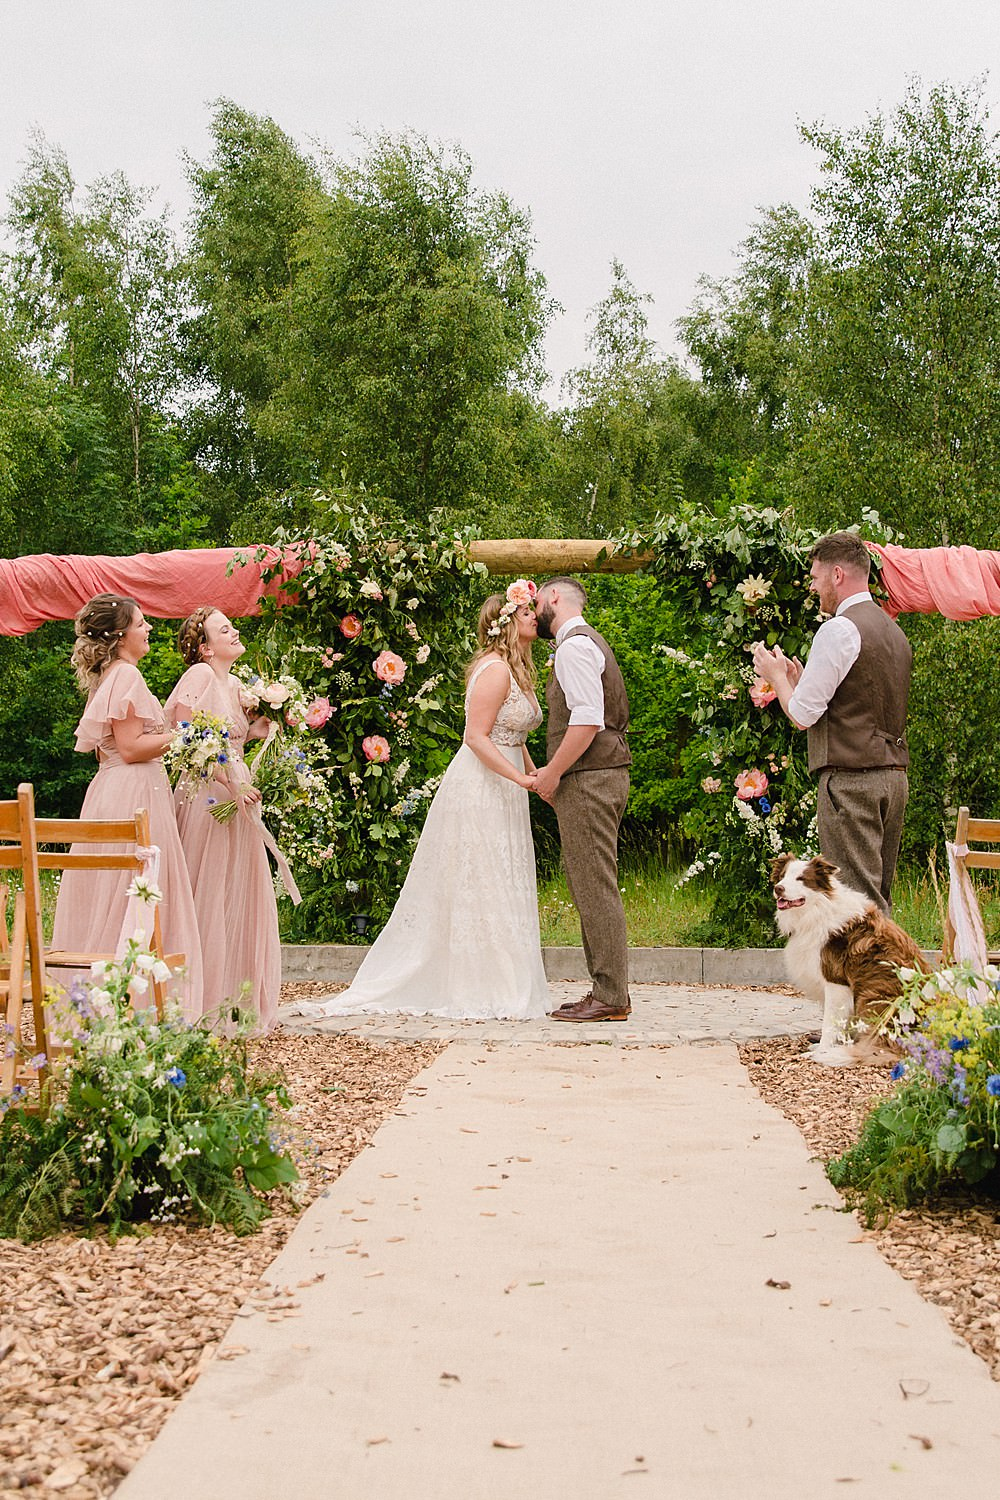 Ceremony Flowers Arch Aisle Meadow Wild Natural Flower Installation Pew End Pet Wedding Ideas Vicky Plum Photography